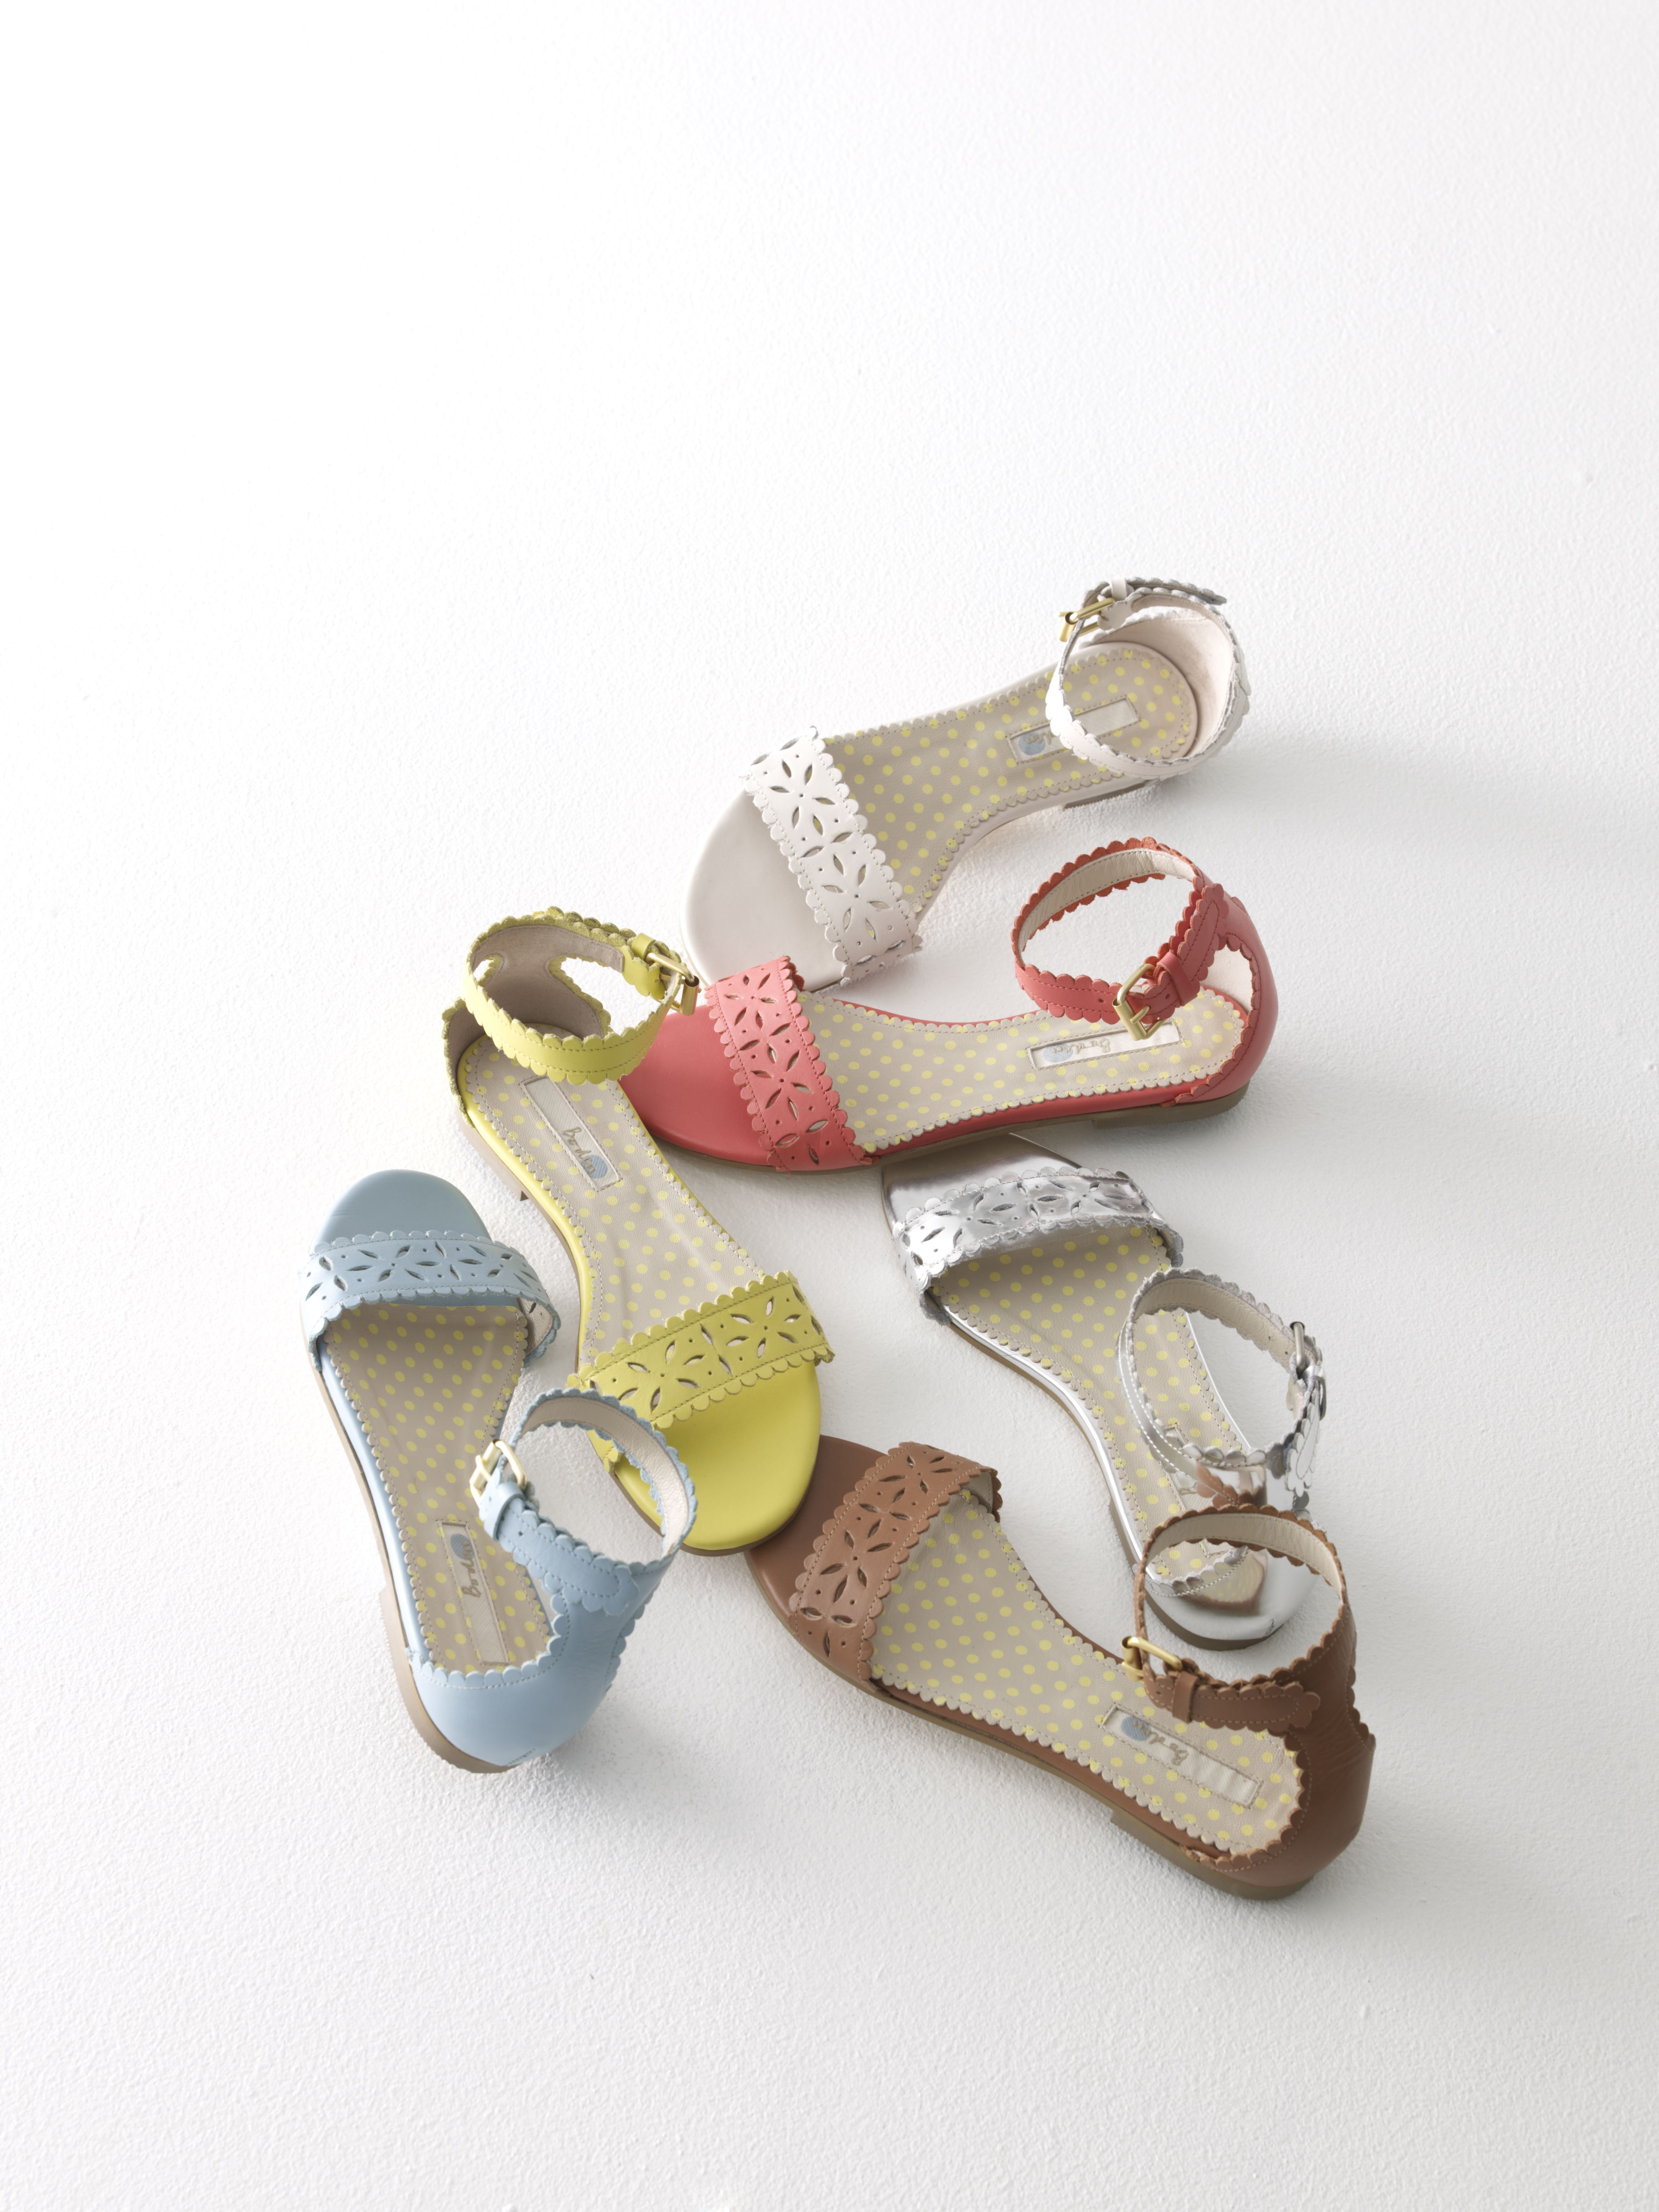 c4b3be549c6 Boden Flora Sandals  Love the yellow